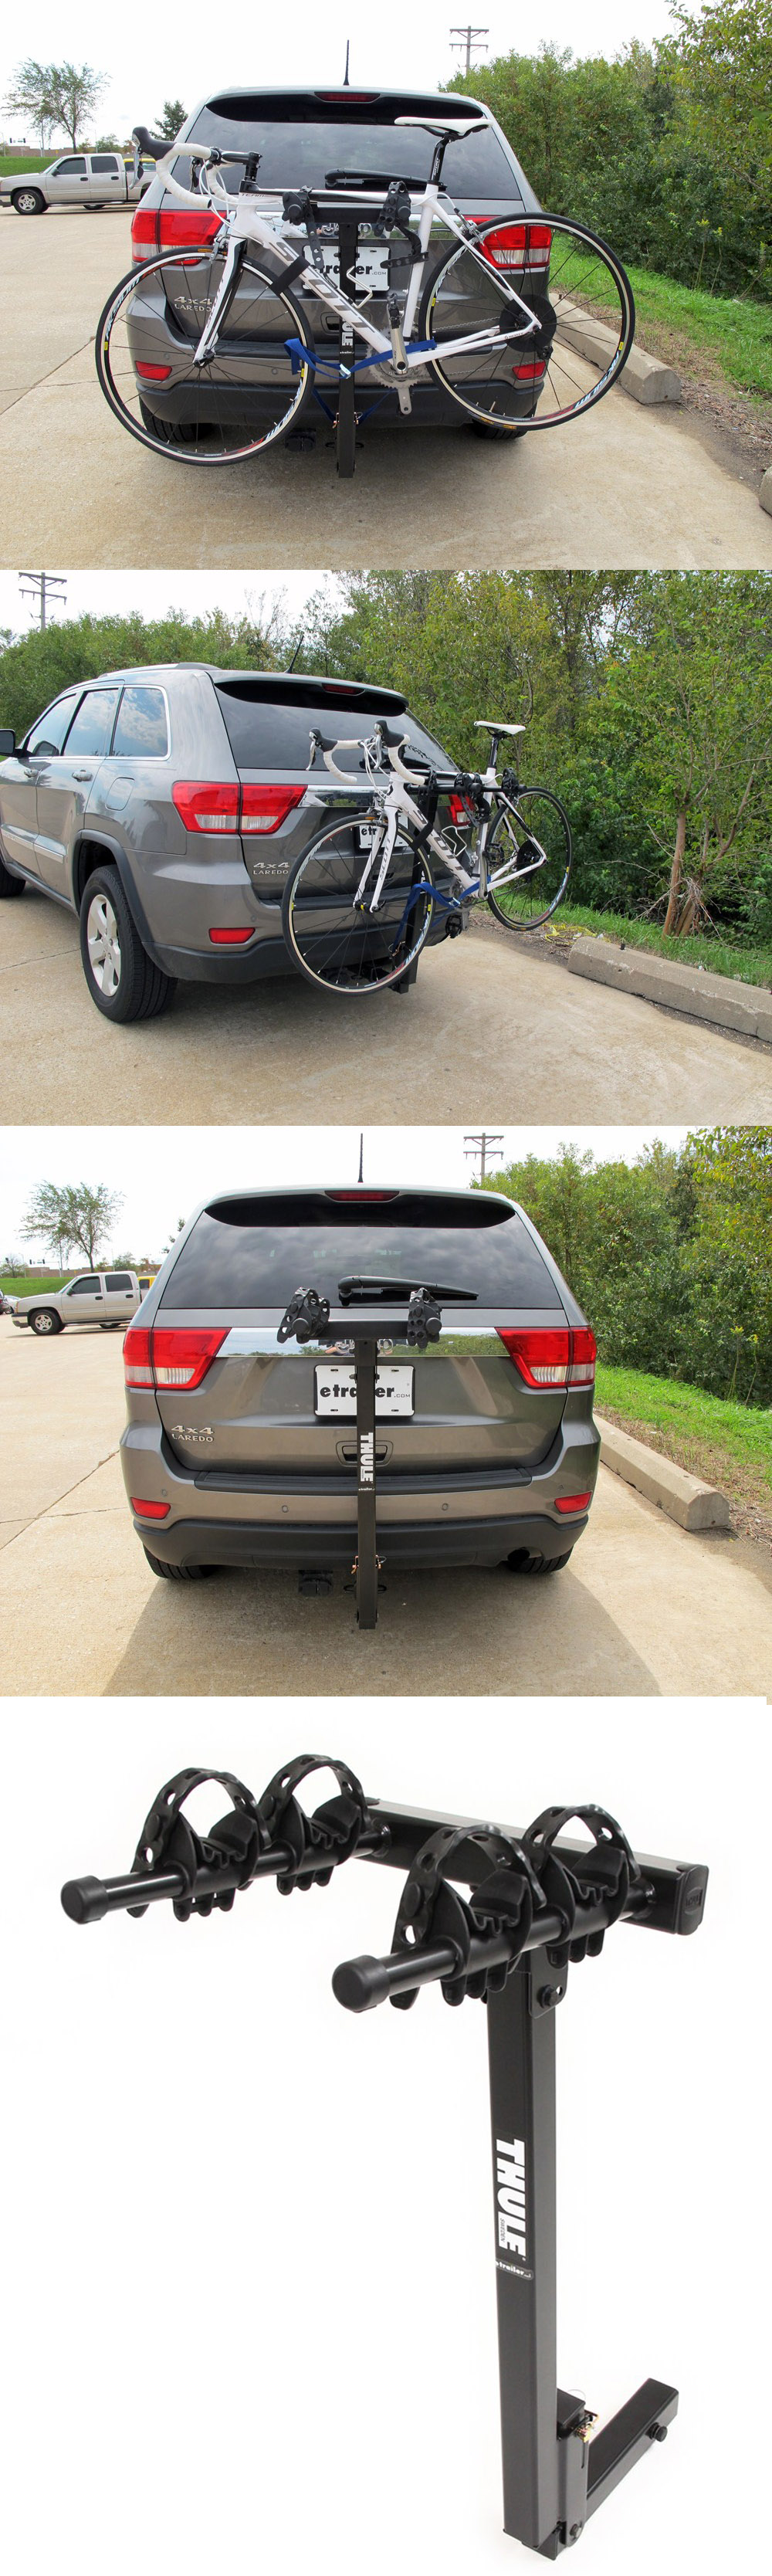 Dual Arm Hitch Mounted Bike Rack Efficiently Transports Bikes To